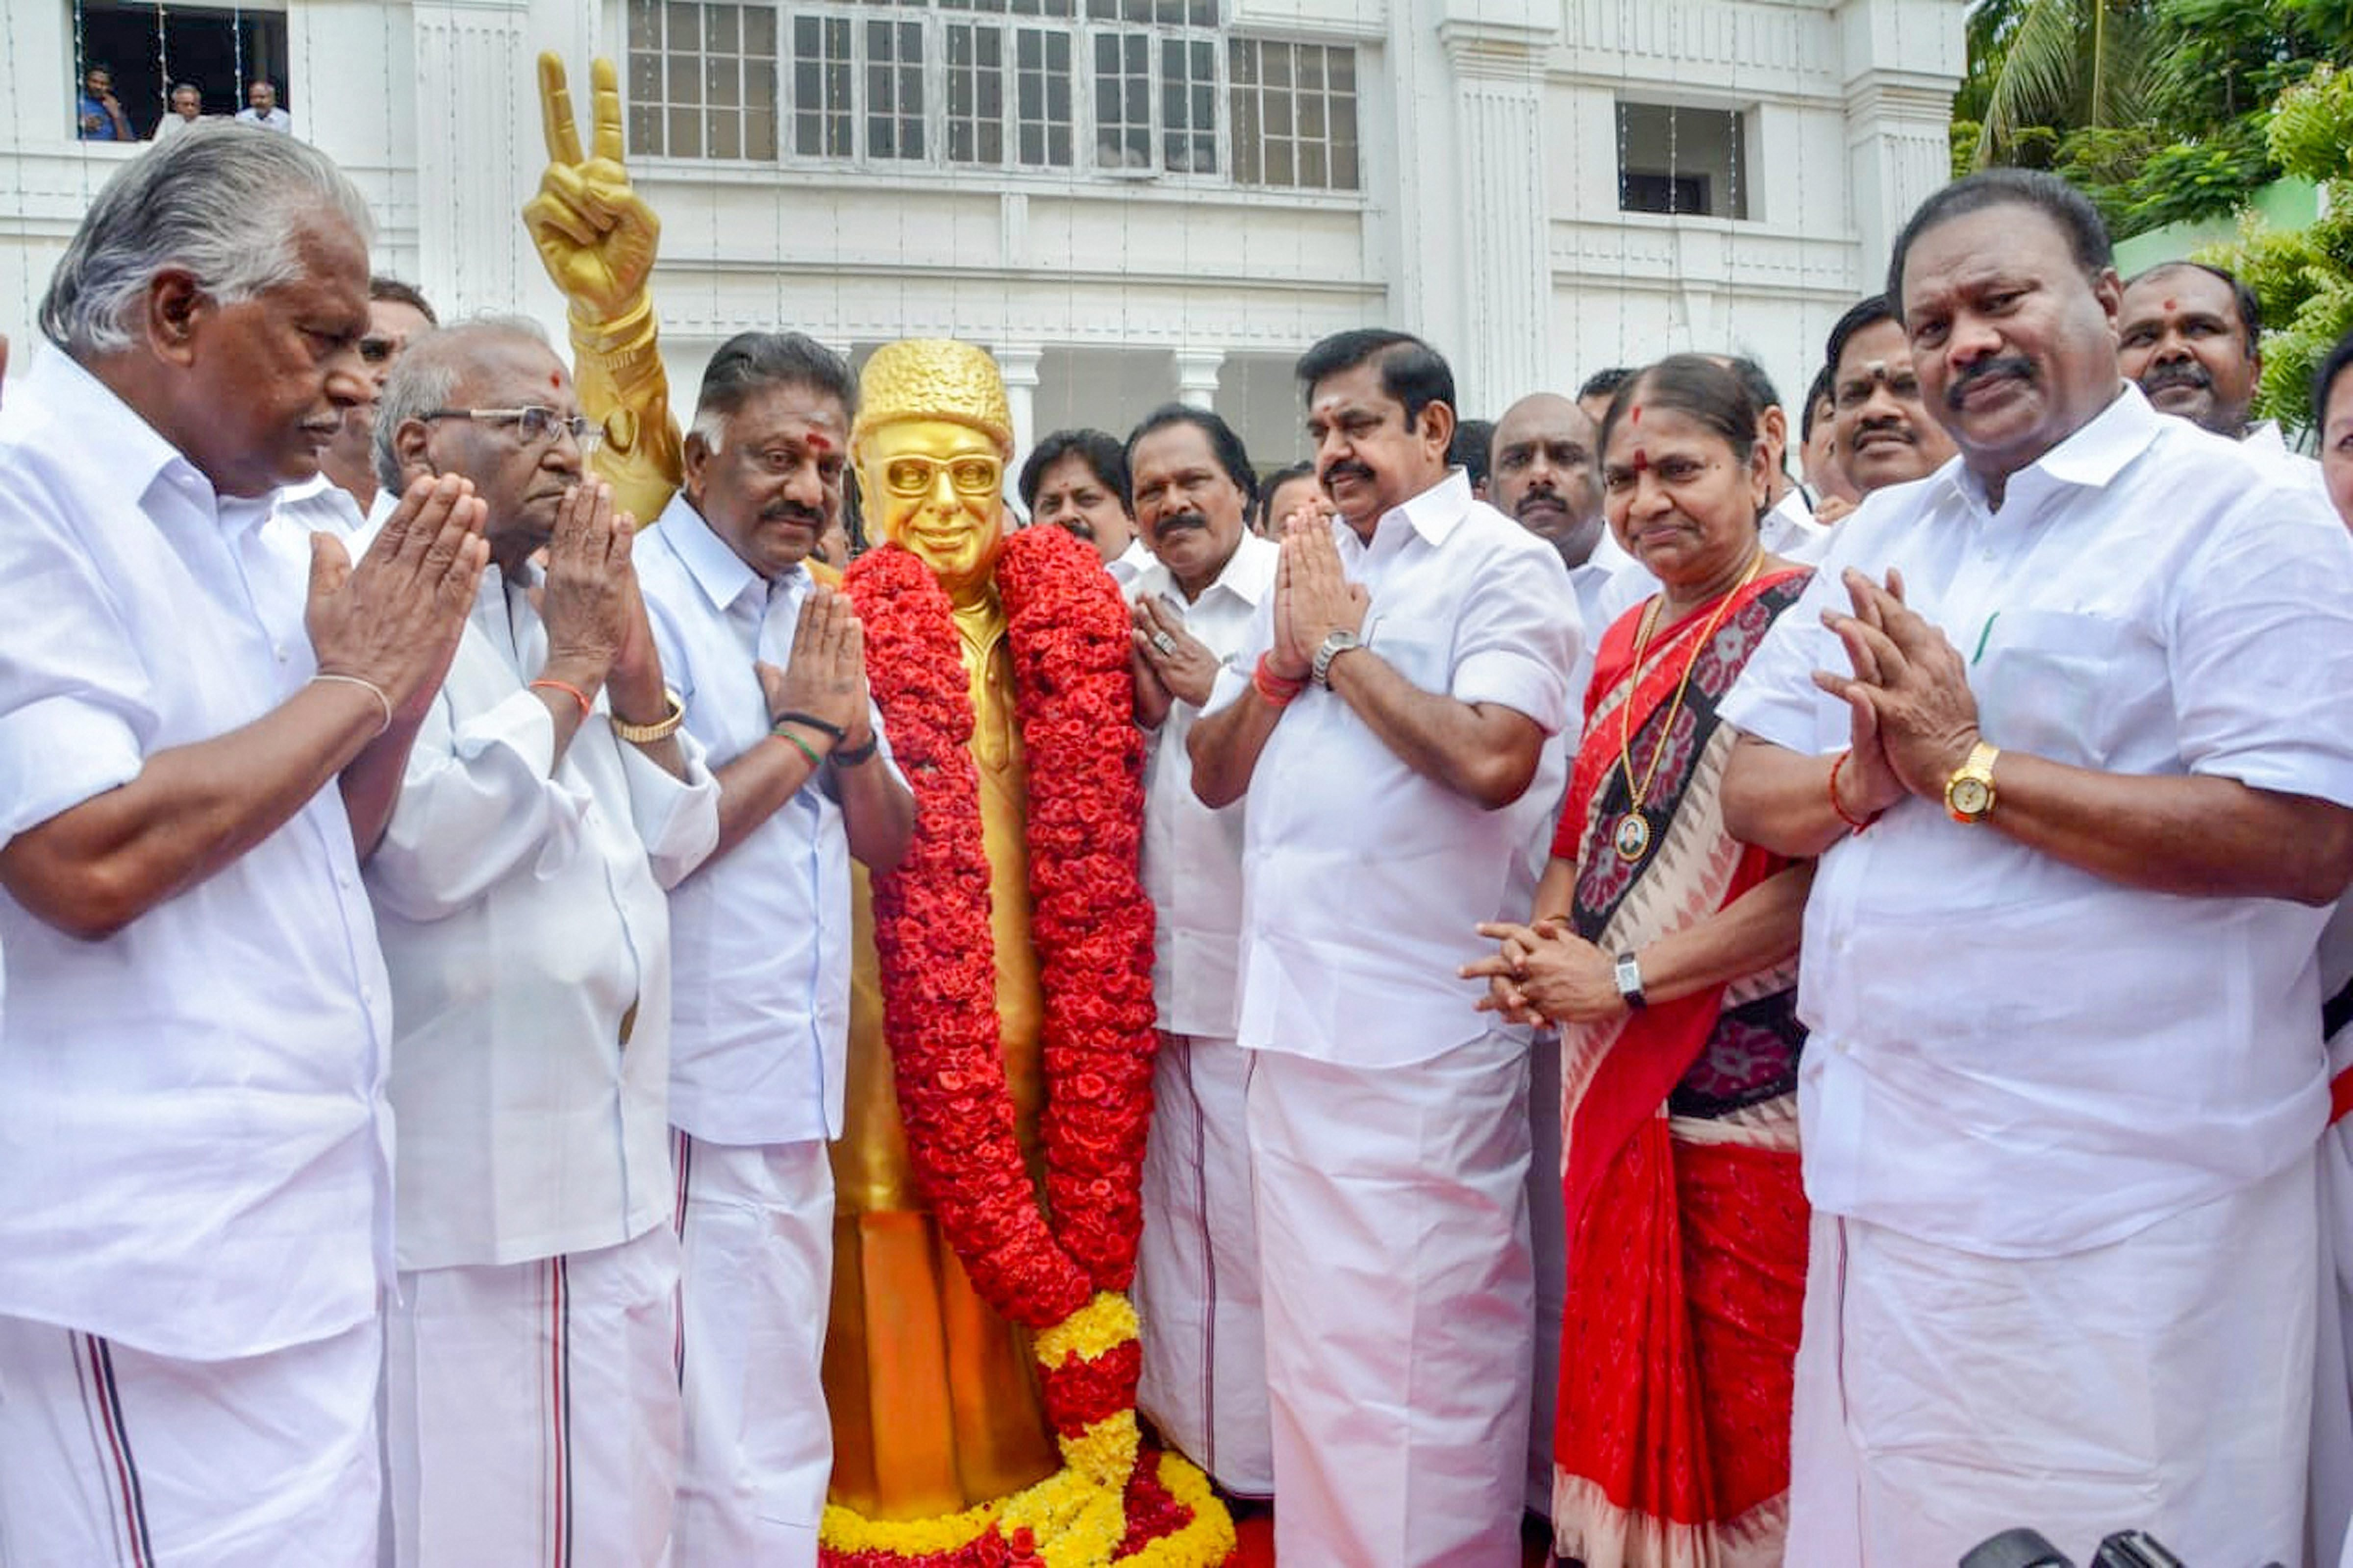 Chief Minister and AIADMK joint coordinator K Palaniswami, party coordinator and deputy CM O Panneerselvam and other senior party leaders during the 47th AIADMK Founding Day celebrations in Chennai - PTI